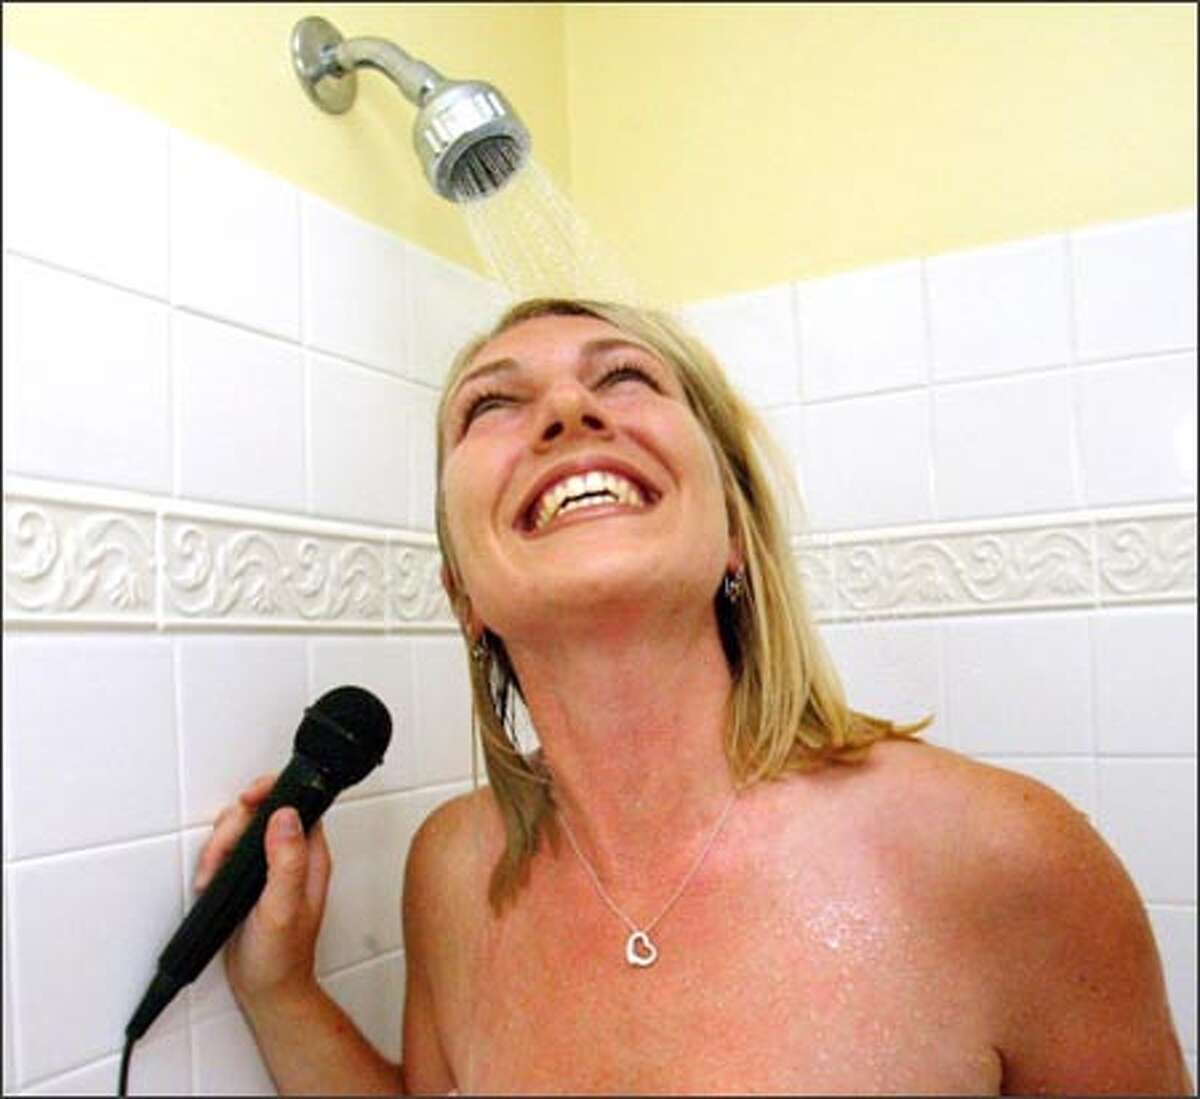 Julie Gatz, winner of the American Standard company's shower-singing contest, practices